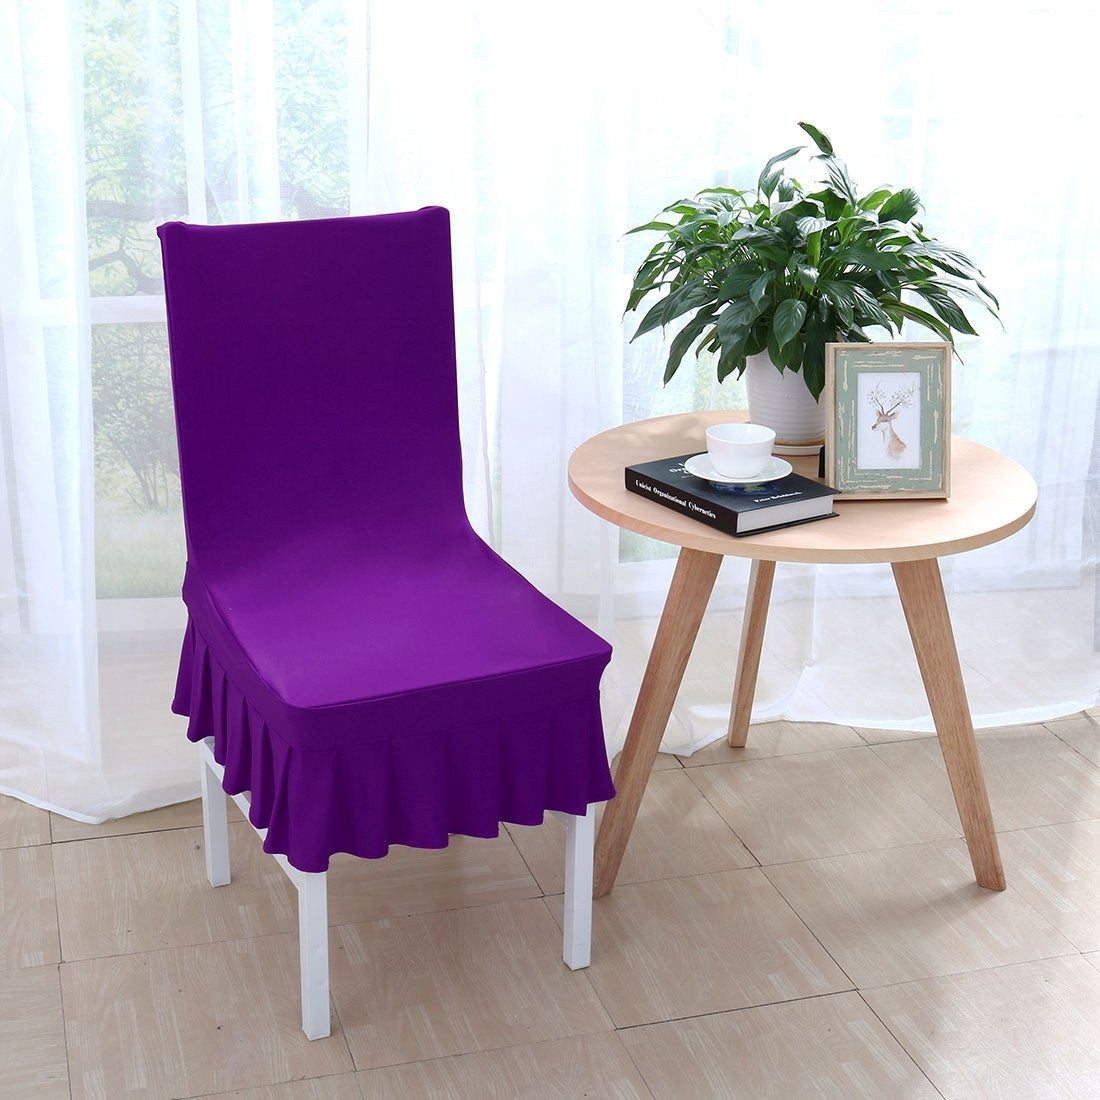 Shop Stretchy Thicken Plush Short Dining Room Chair Covers Seat Protector Slipcover